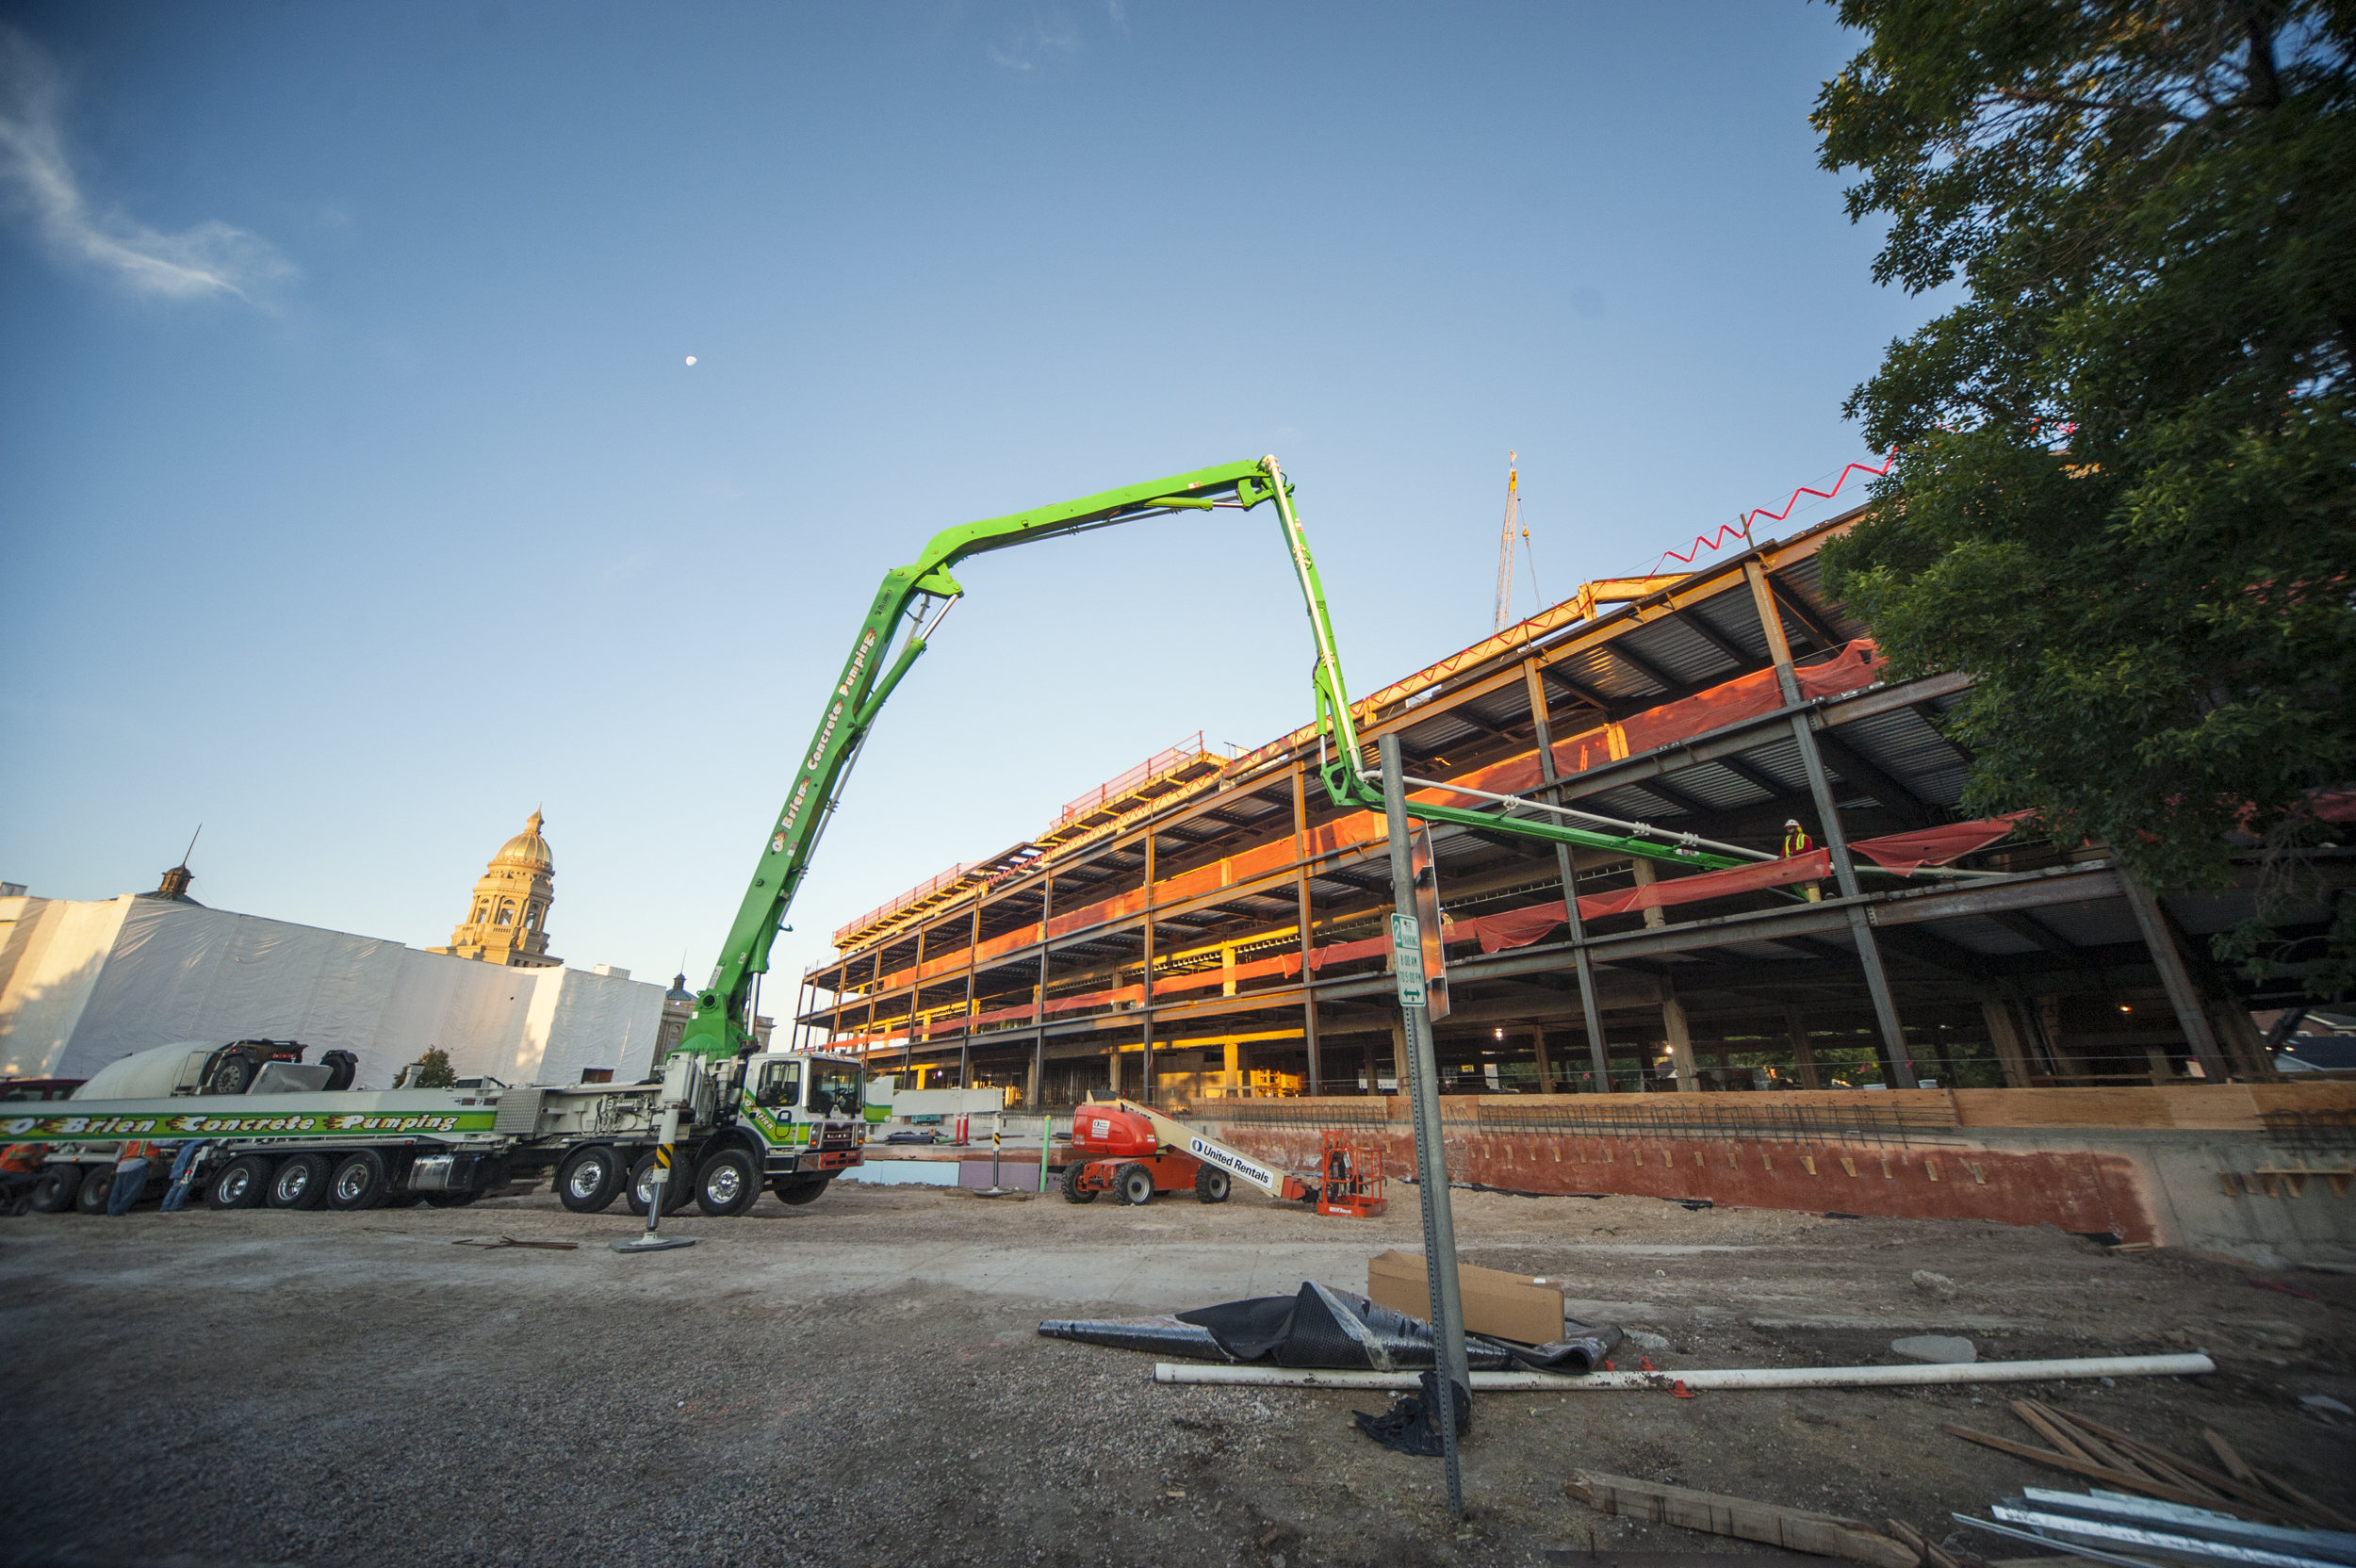 An early morning at the Wyoming Capitol Square Project. Similar to previous concrete pours, the operation was planned to avoid city traffic interfering with the delivery of concrete. The pours on July 14 and July 15 began at 5 a.m.